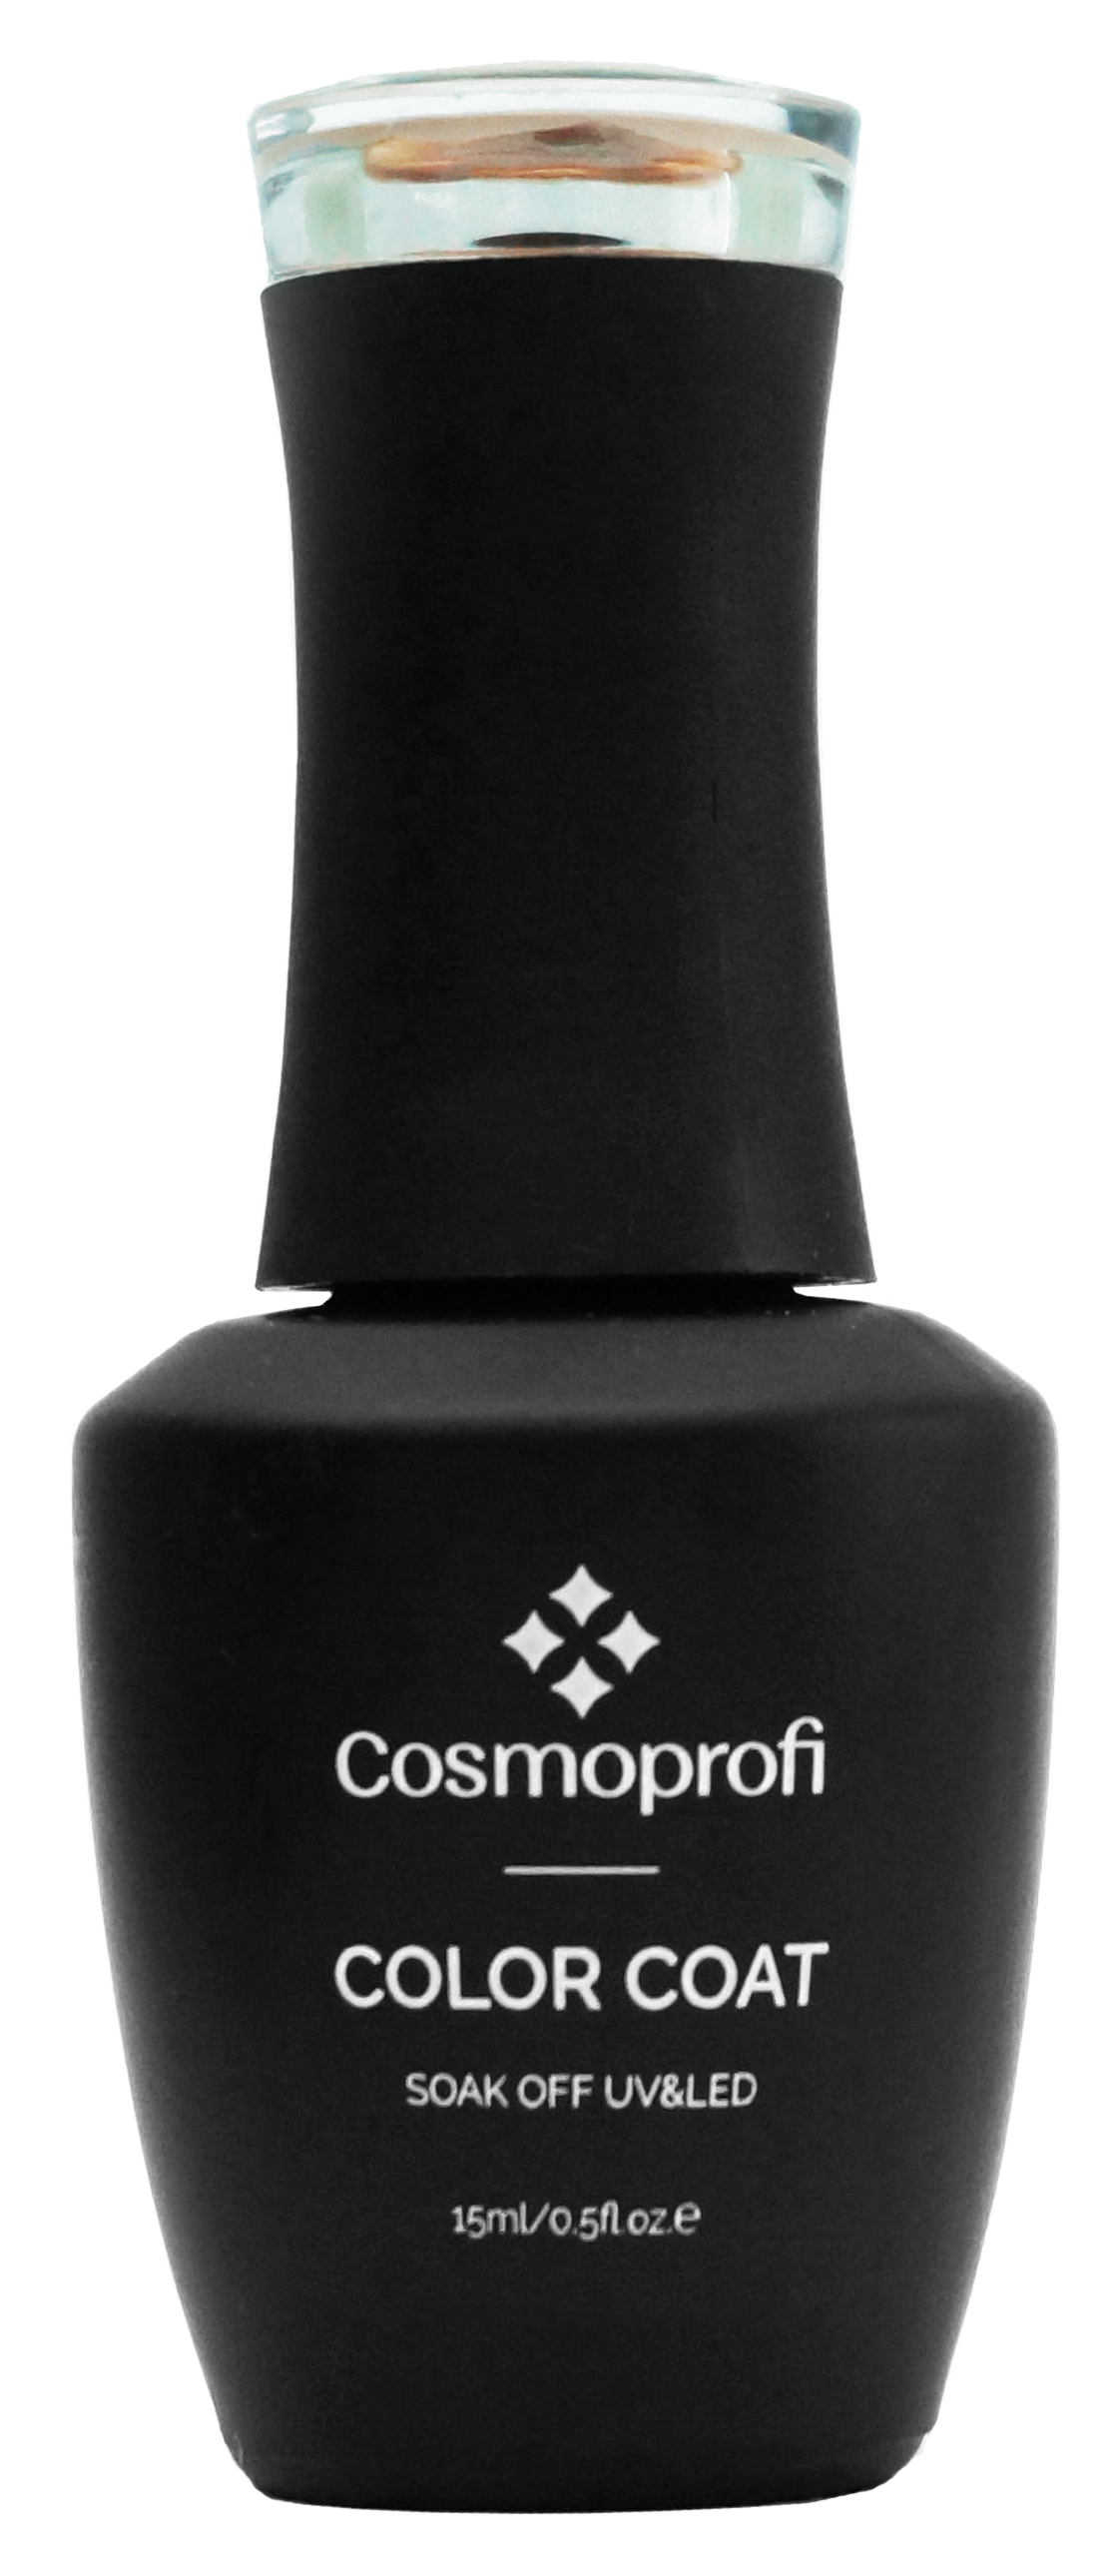 Гель-лак Cosmoprofi, Color coat № 296, 15 мл